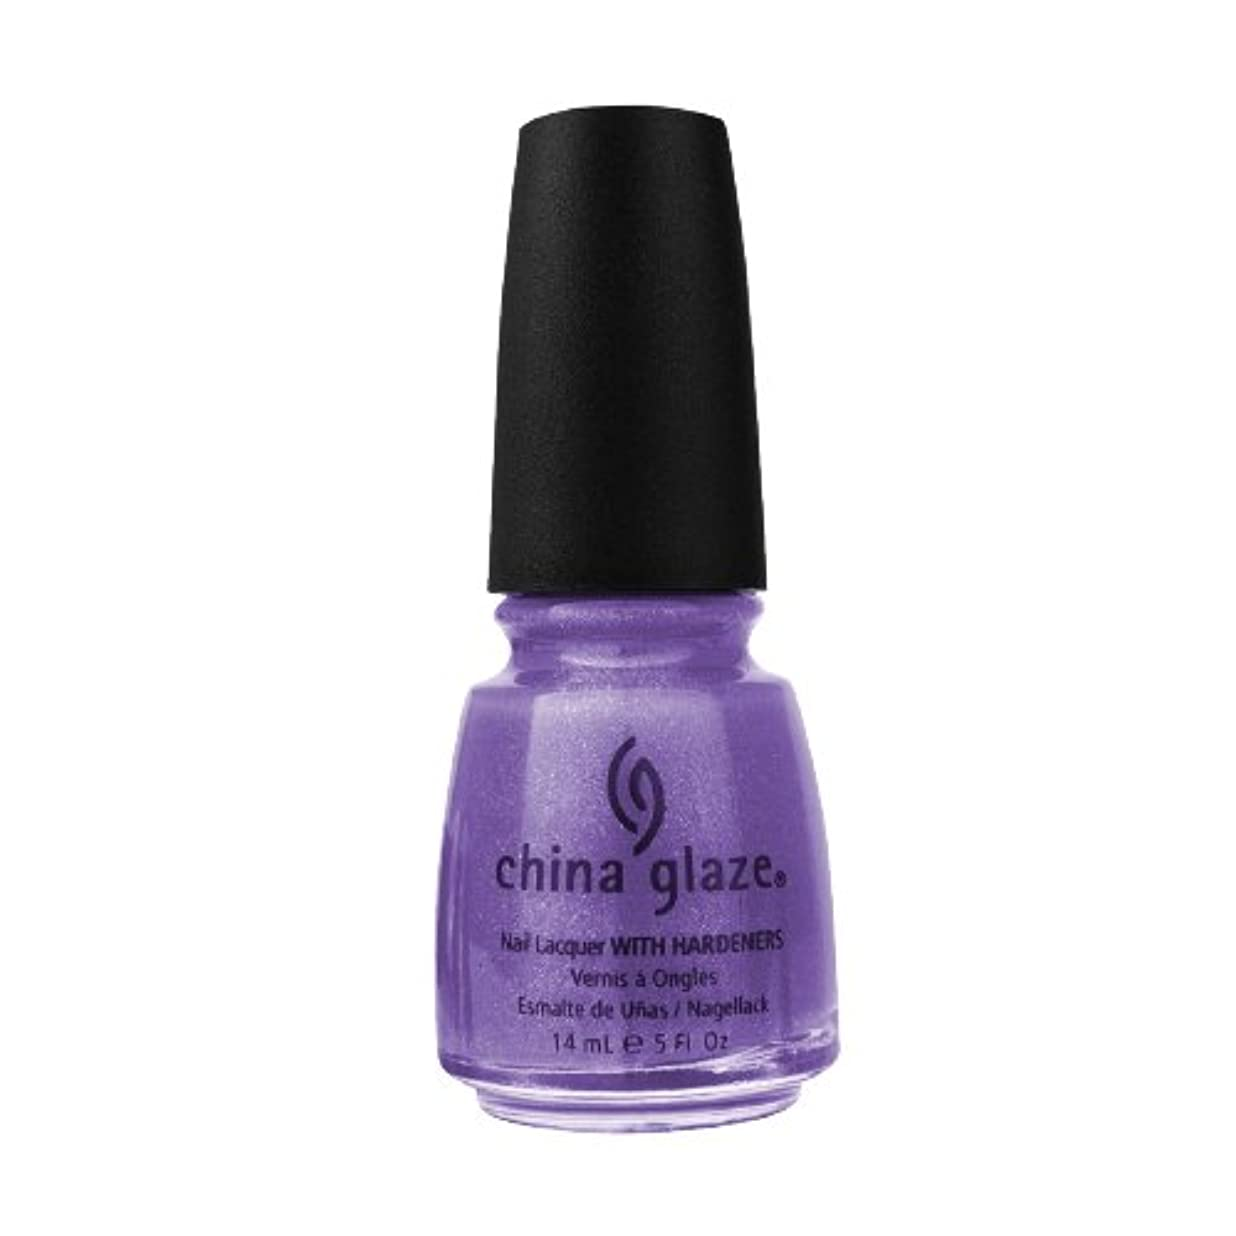 パック外科医に勝るCHINA GLAZE Nail Lacquer with Nail Hardner 2 - Grape Juice (並行輸入品)